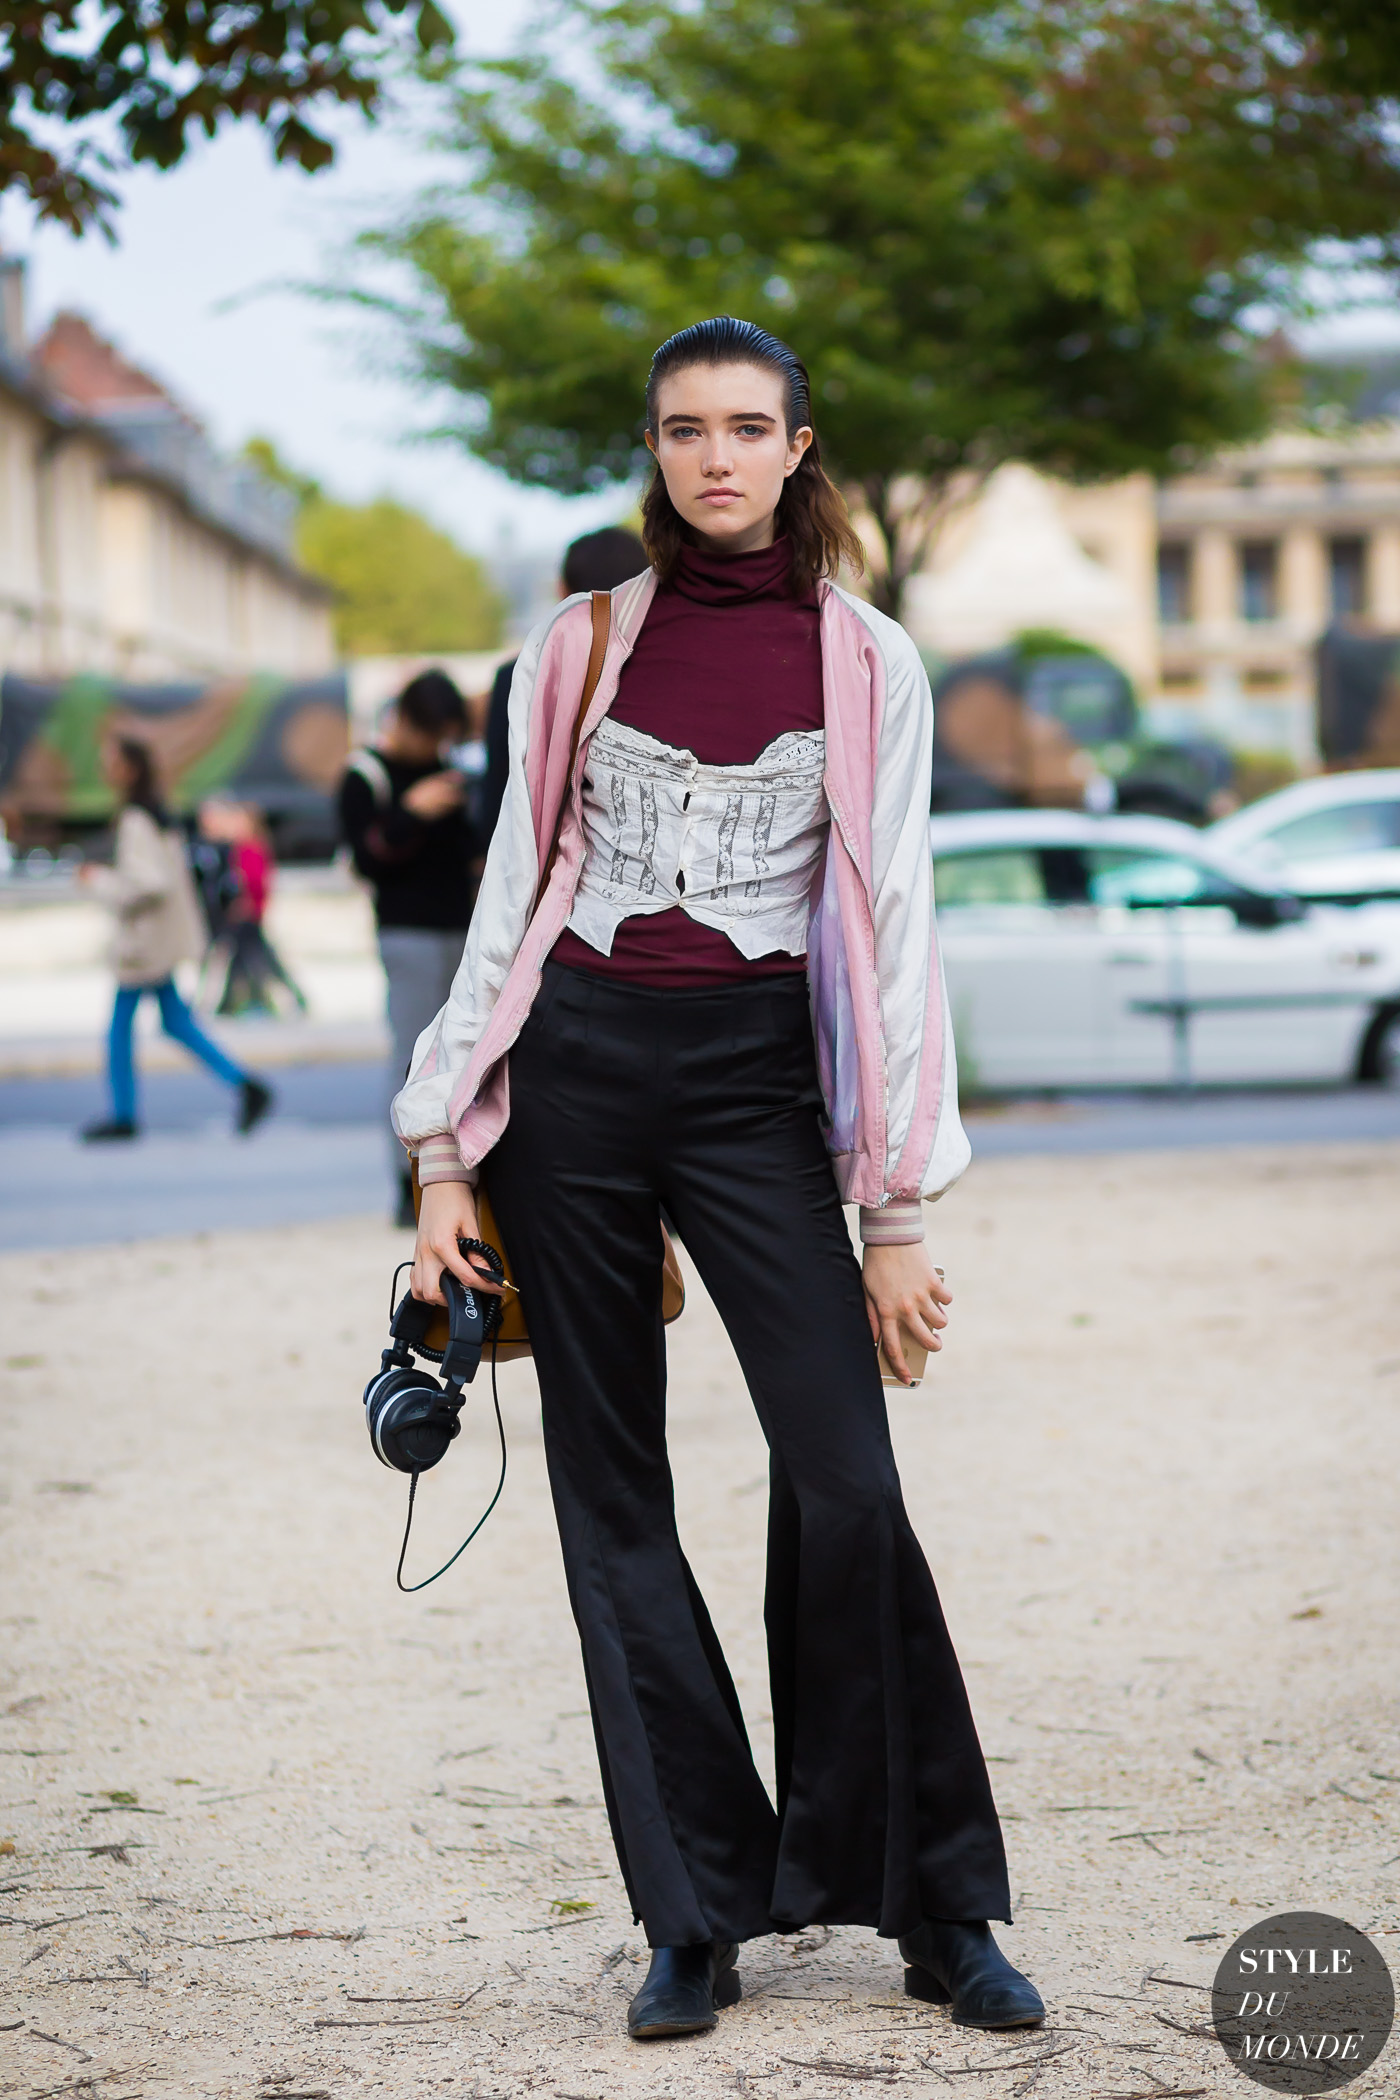 grace-hartzel-by-styledumonde-street-style-fashion-photography